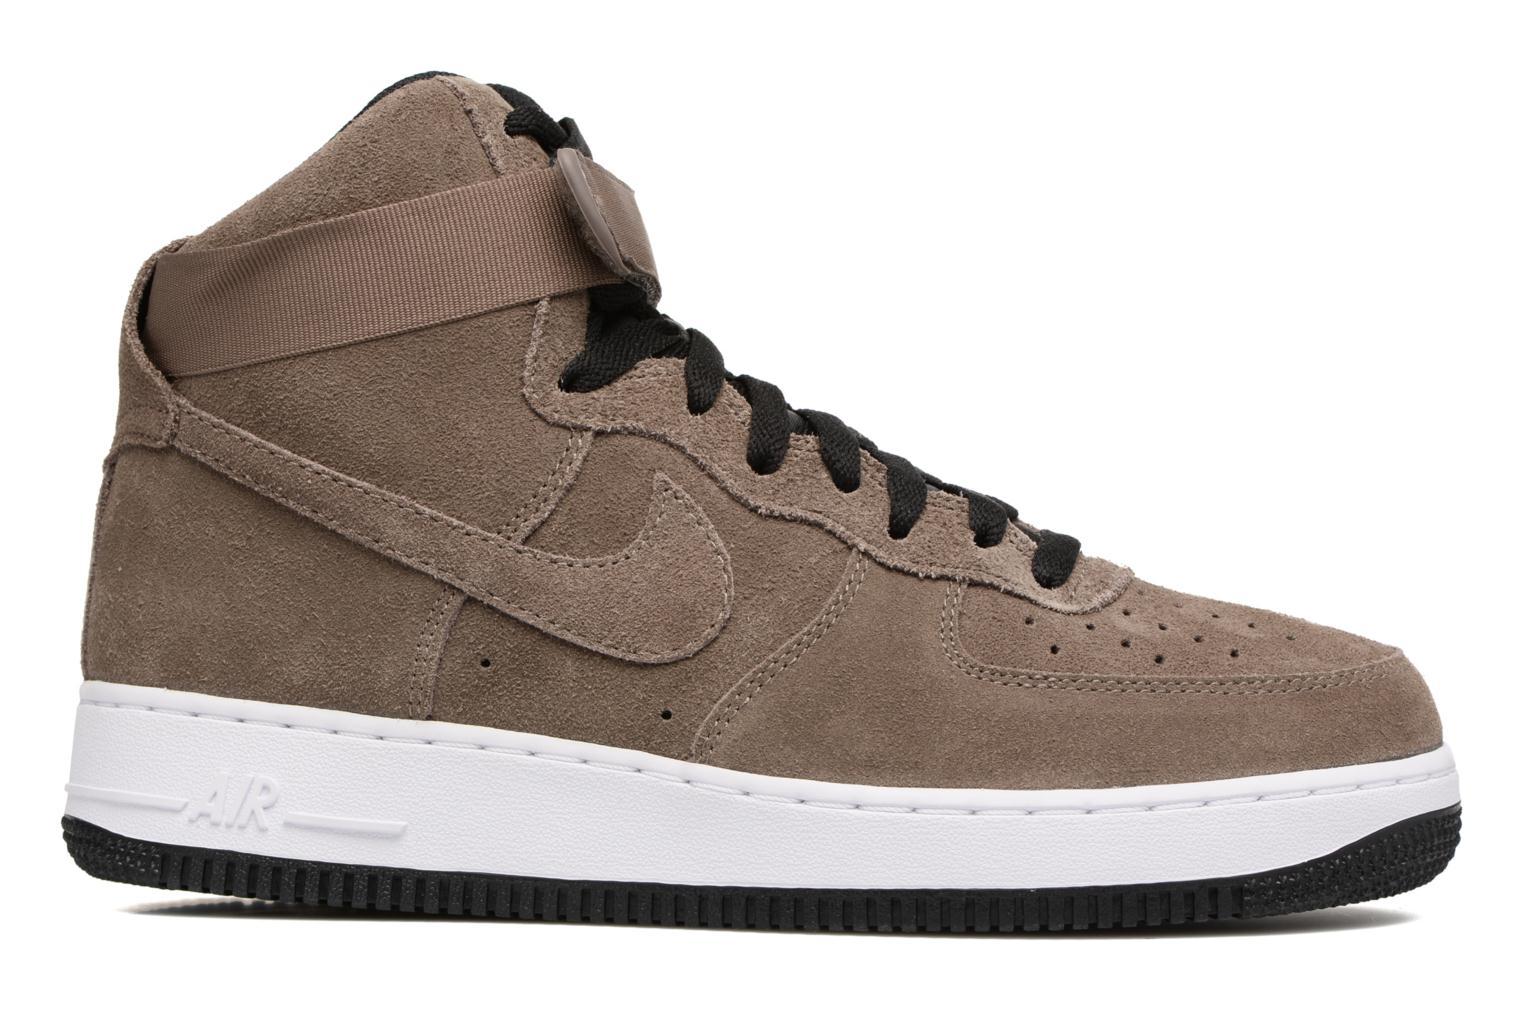 Air Force 1 High'07 Dark Mushroom/Dark Mushroom-Black-White